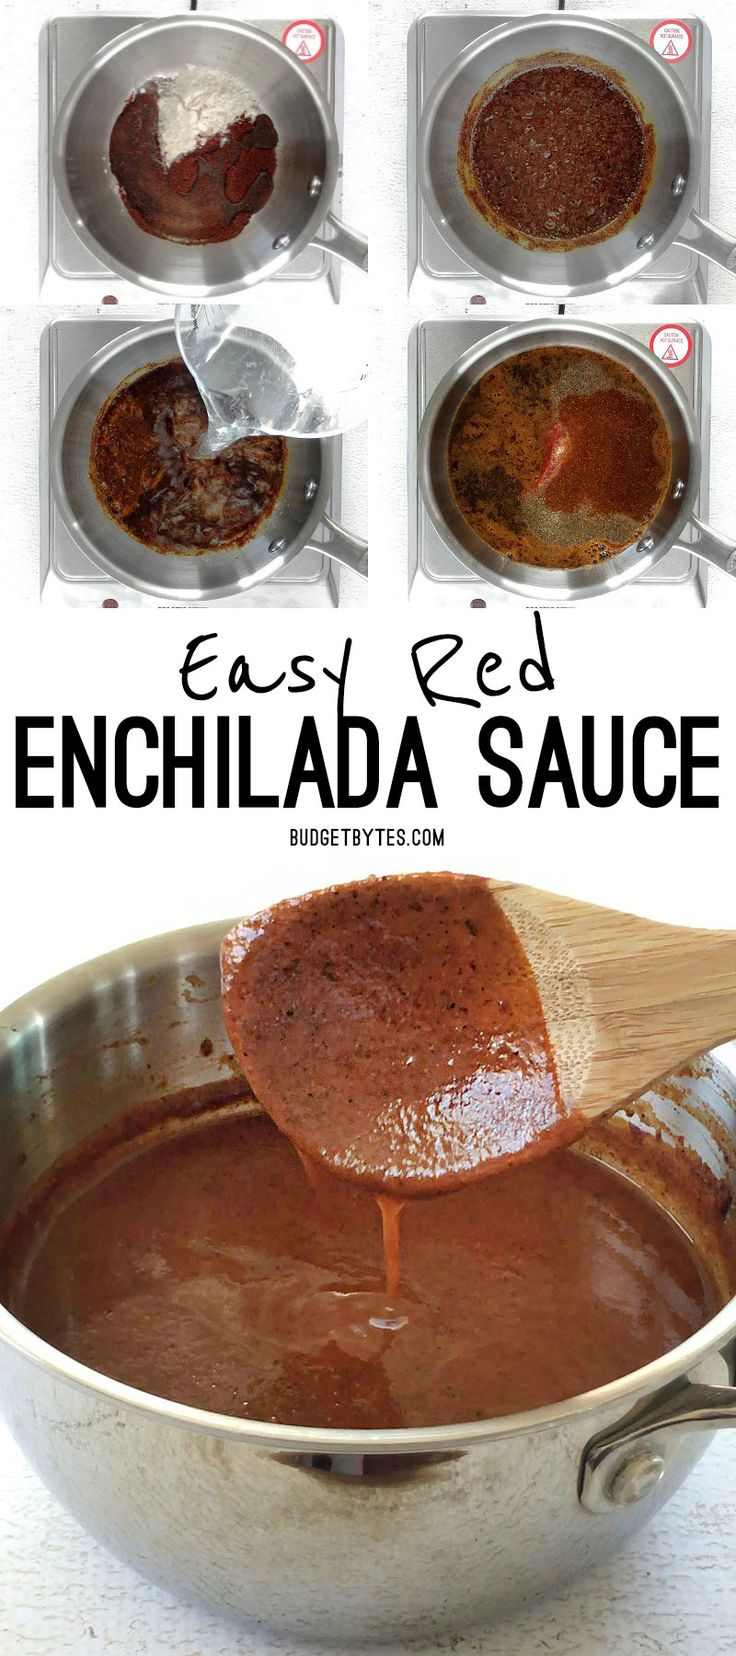 It only takes 10 minutes to make this super easy red enchilada sauce that is bursting with flavor. Never buy the canned stuff again! BudgetBytes.com